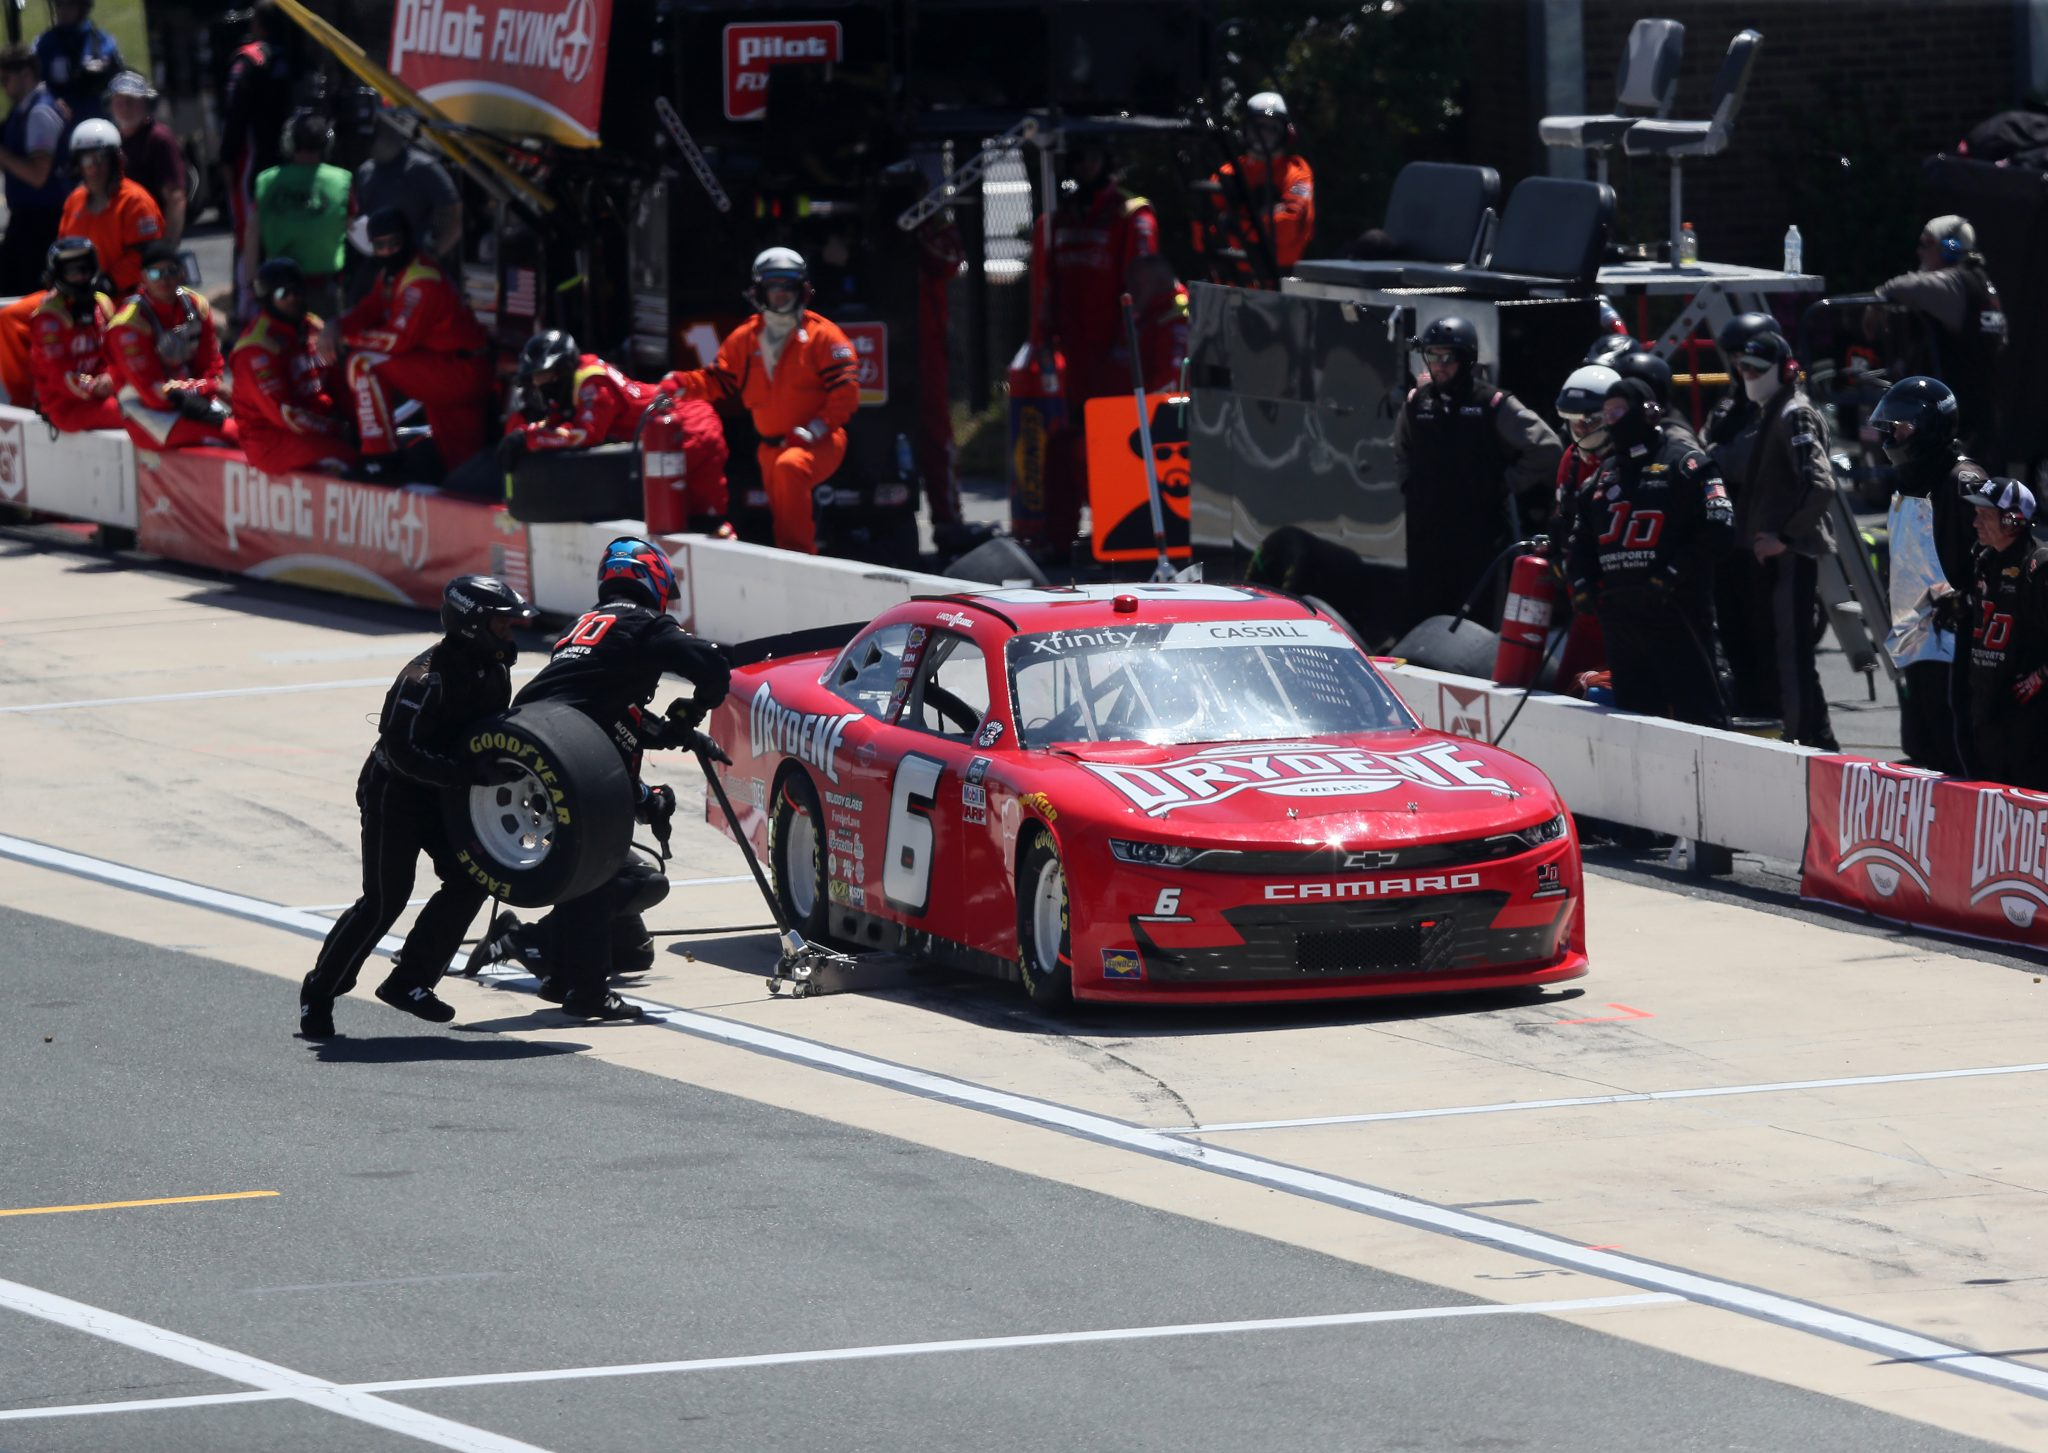 DOVER, DELAWARE - MAY 15: Landon Cassill, driver of the #6 TeamJDMotorsports.com Chevrolet, pits during the NASCAR Xfinity Series Drydene 200 race at Dover International Speedway on May 15, 2021 in Dover, Delaware. (Photo by James Gilbert/Getty Images) | Getty Images